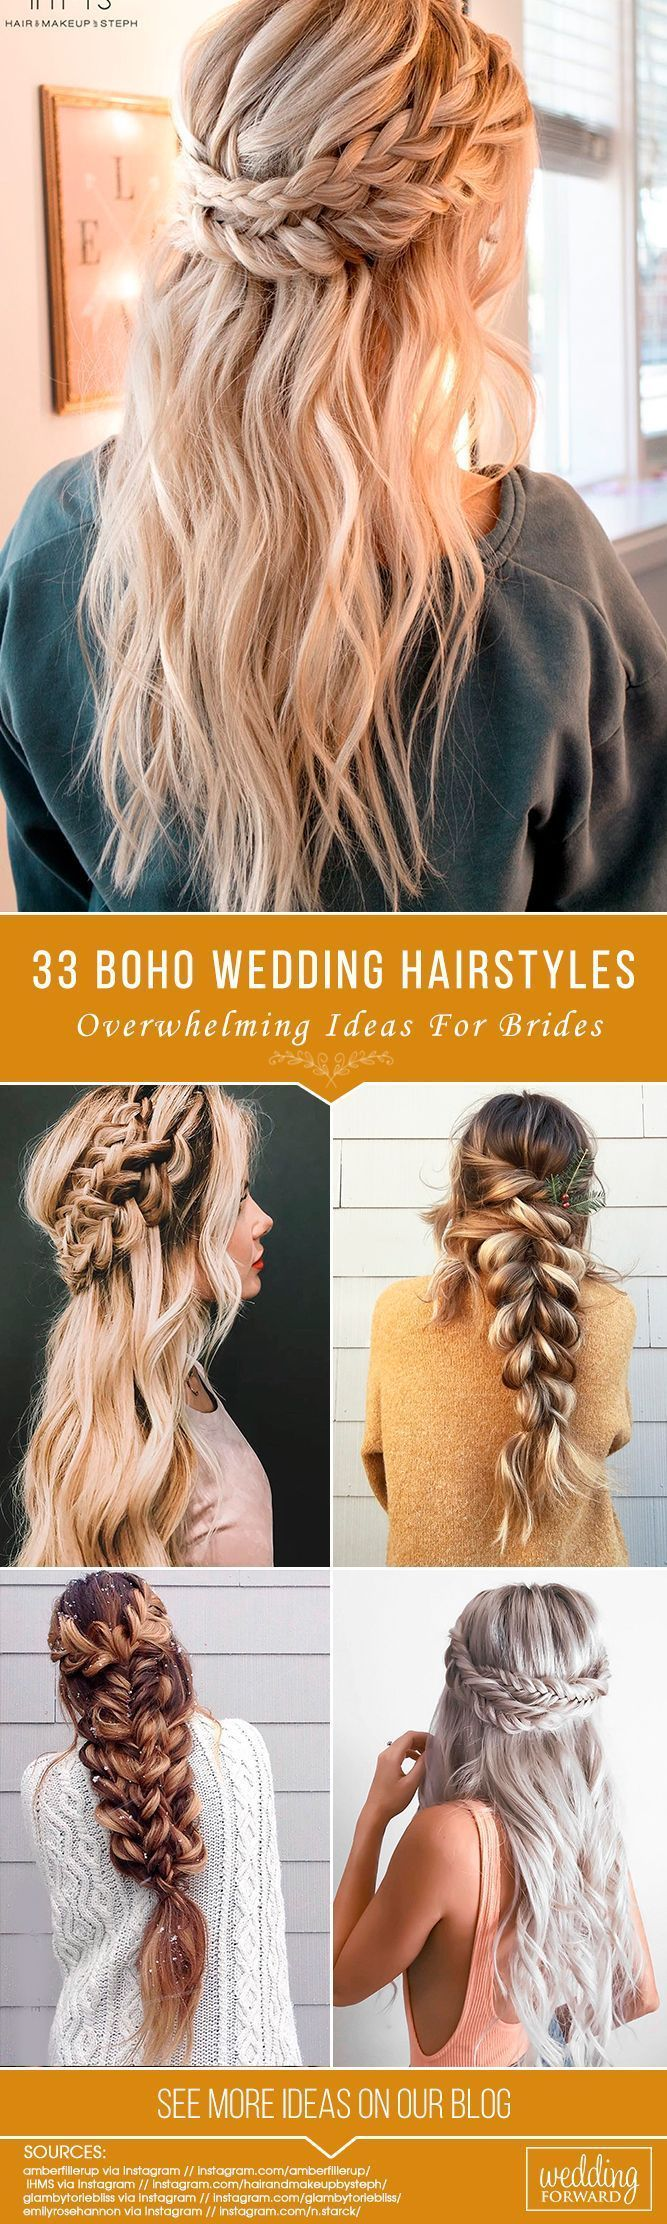 best braided hairstyles images on pinterest cute hairstyles